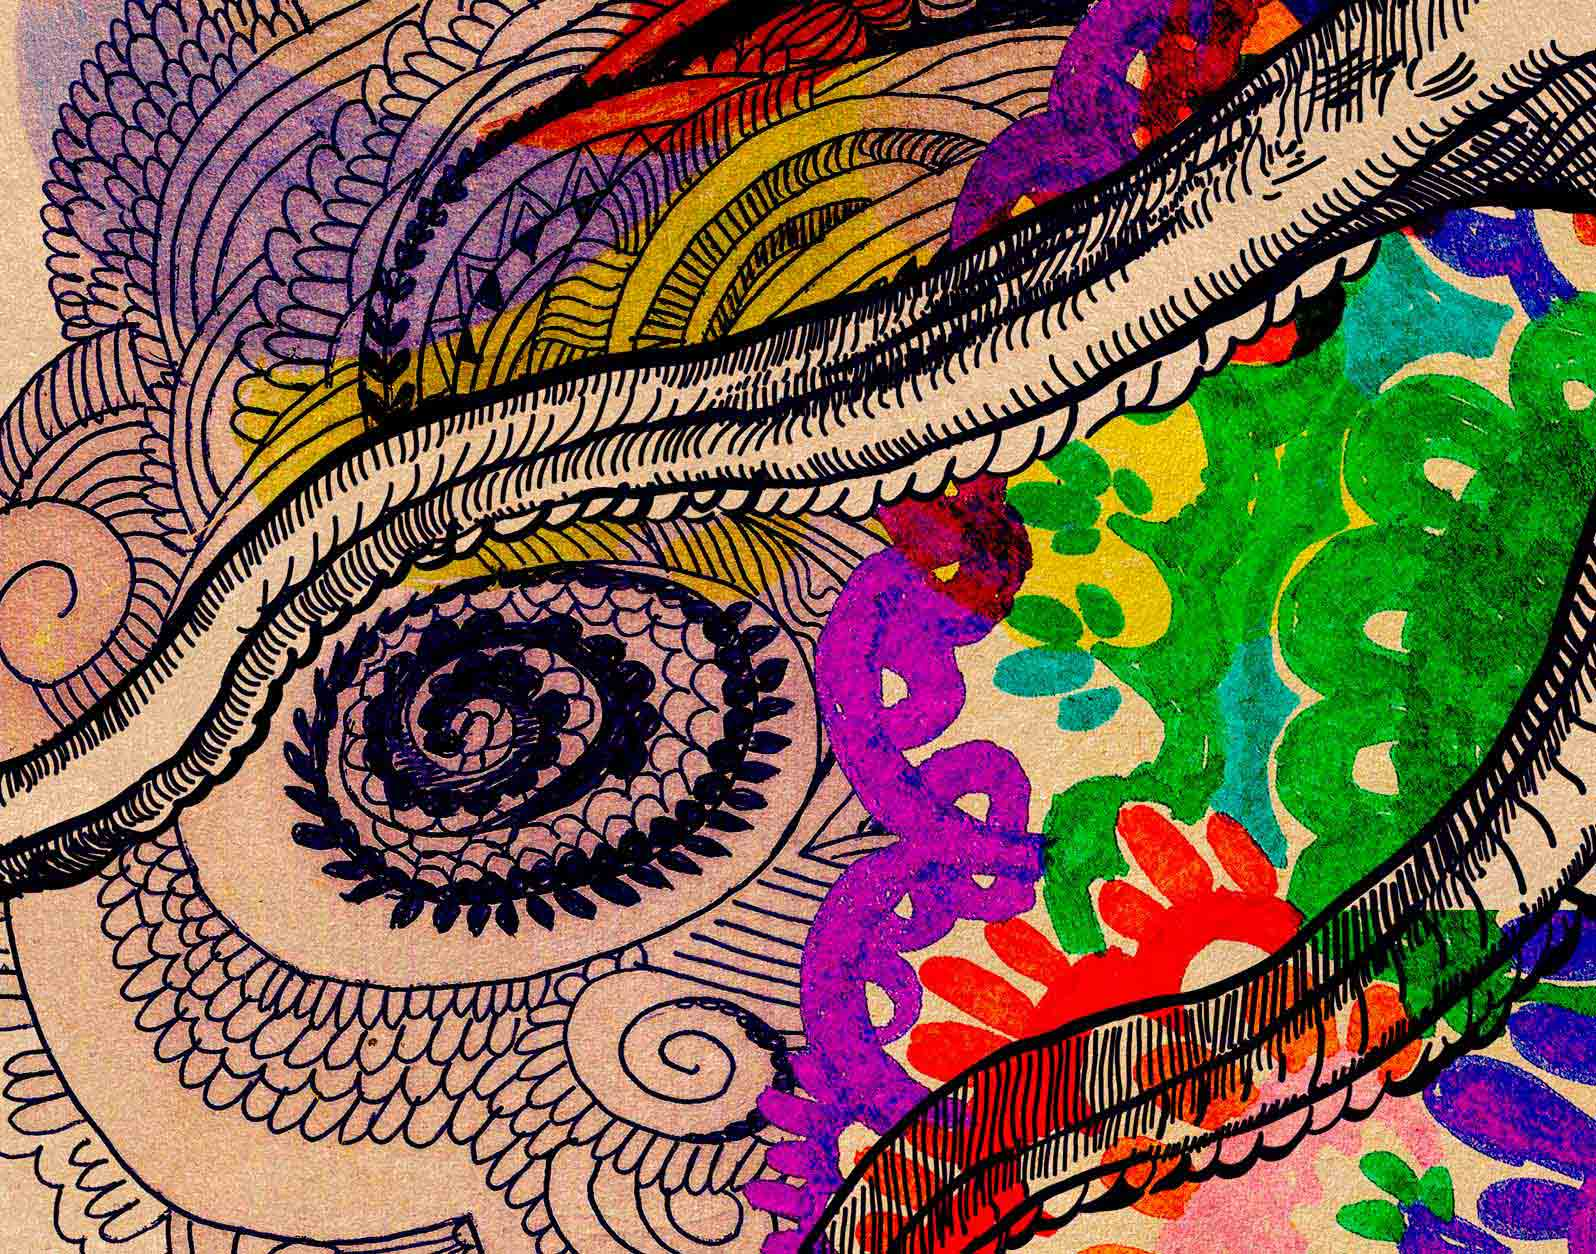 Anca Stefanescu | Octopus's Garden Digital Art, Computer Art on Canvas